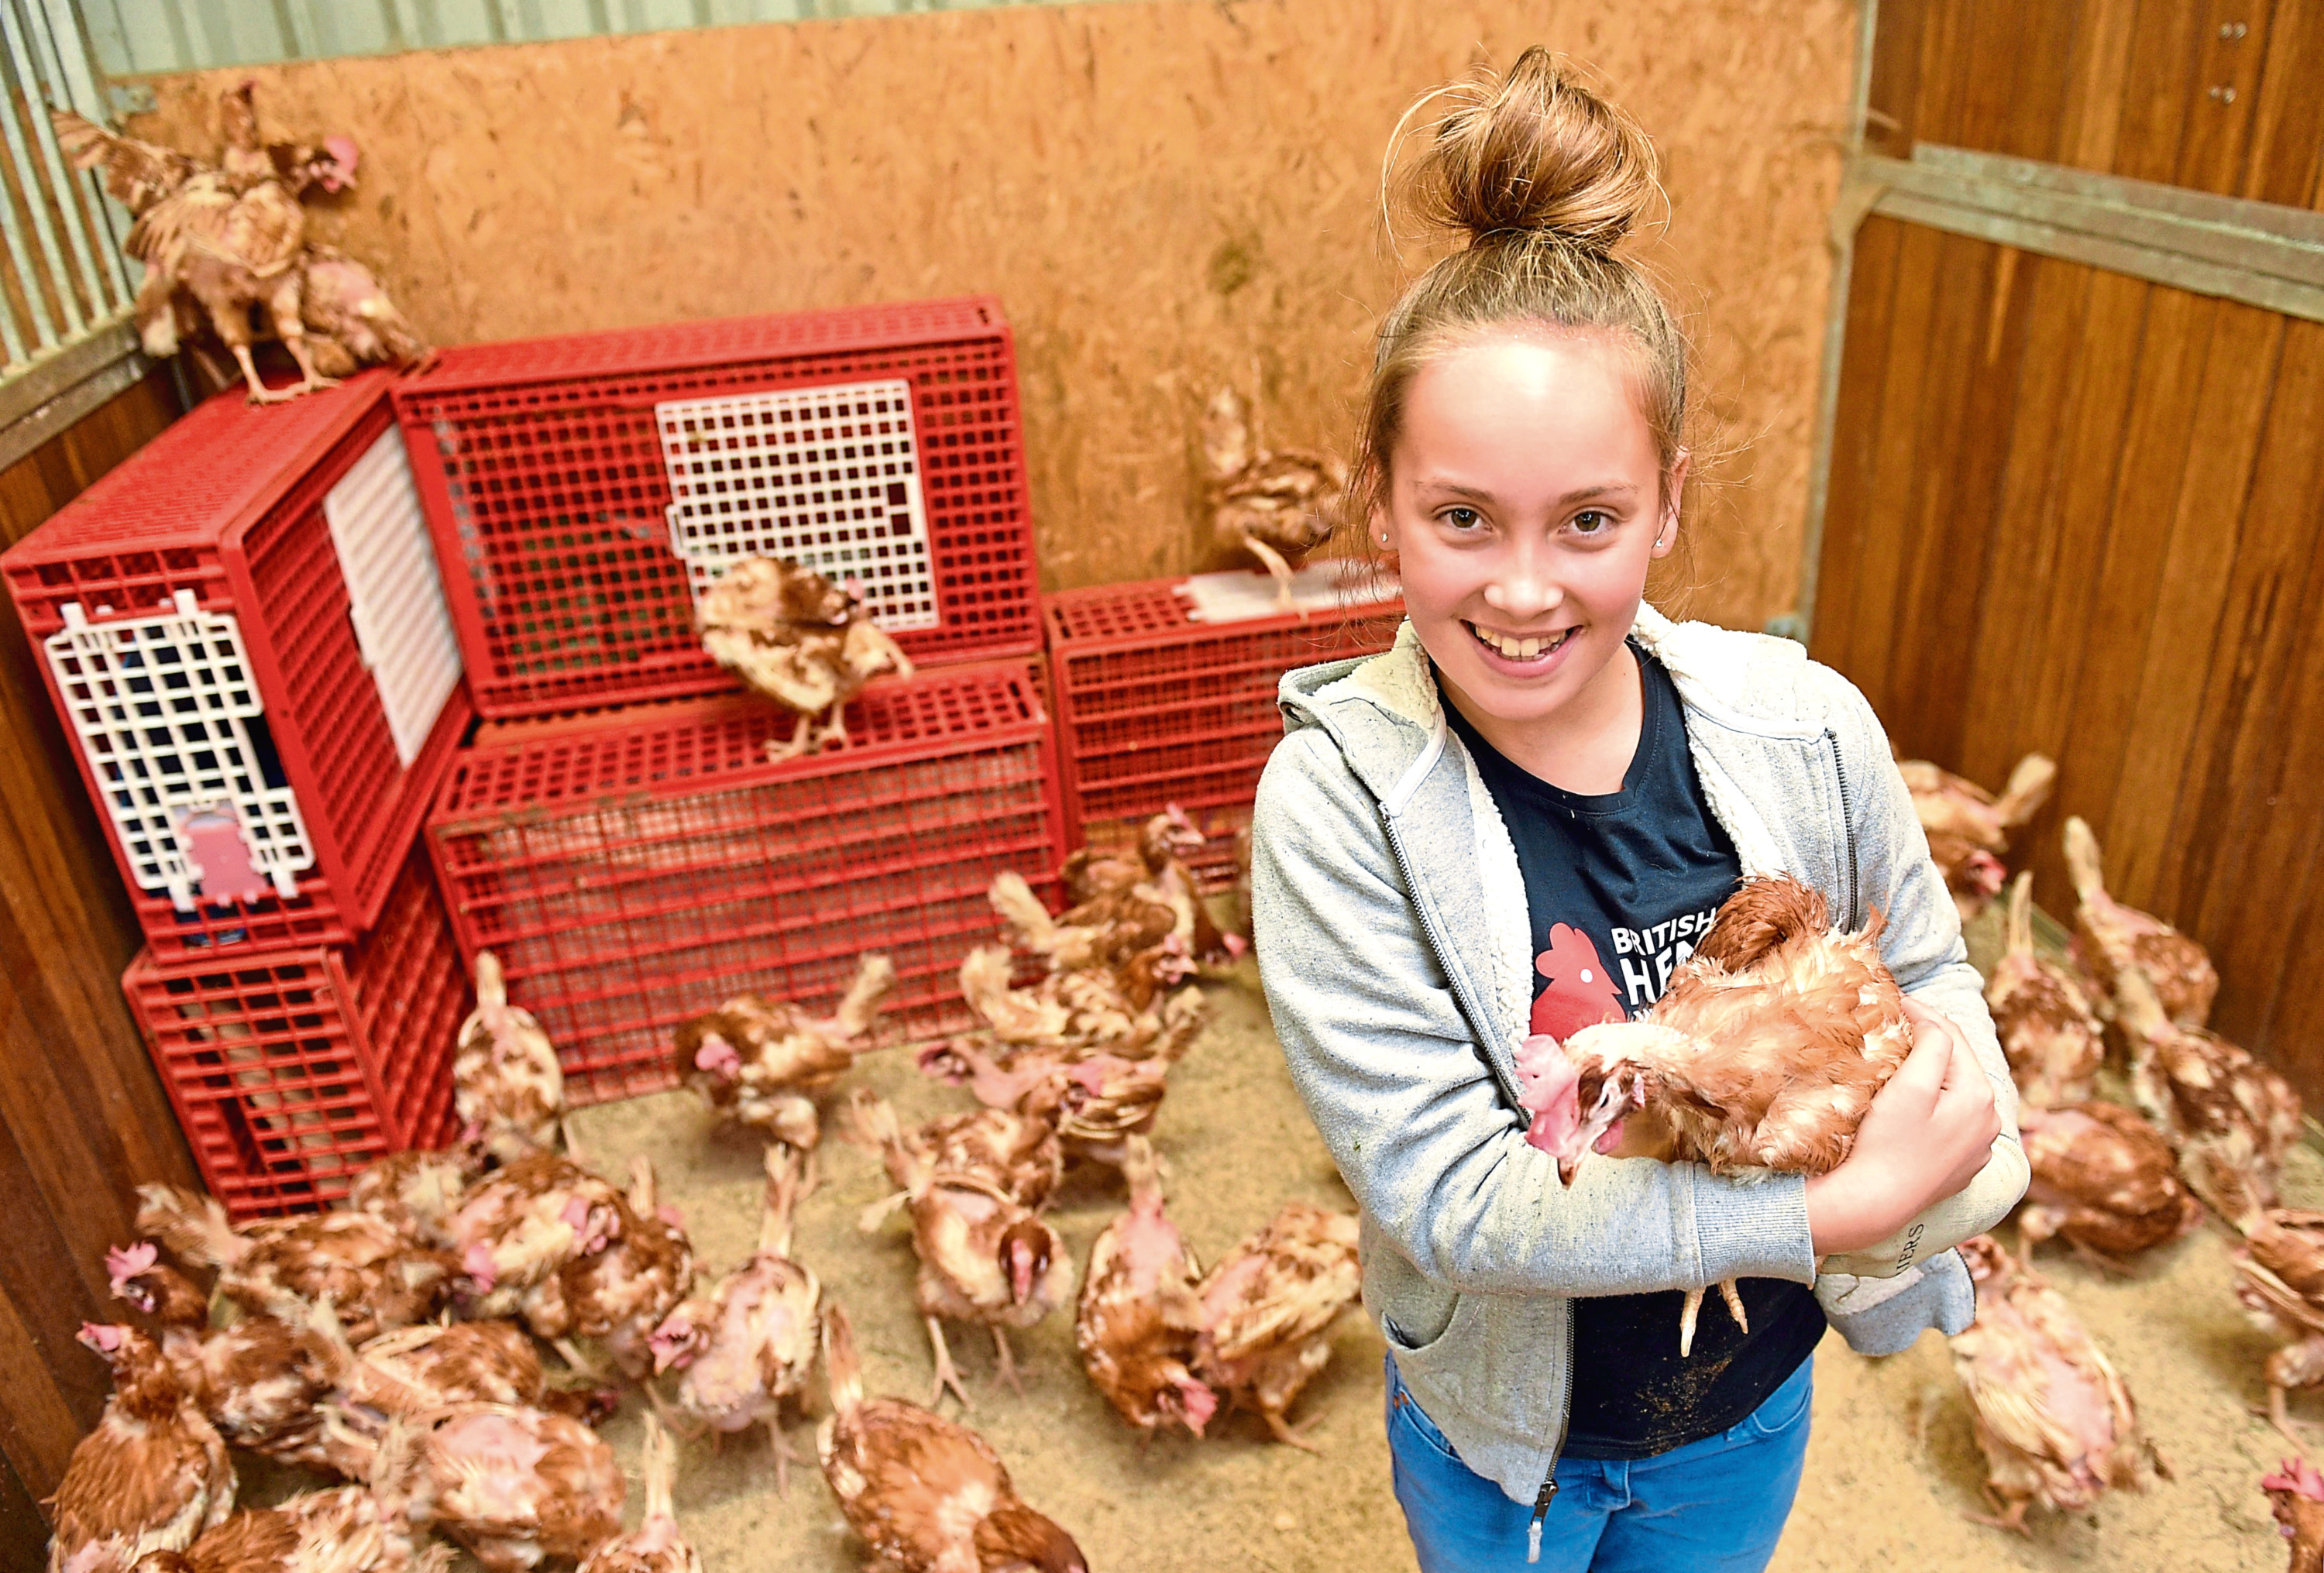 Jordan Kay, 11, with one of the chickens which are being rehomed by the British Hen Welfare Trust at Cheyne Farm House, Stonehaven